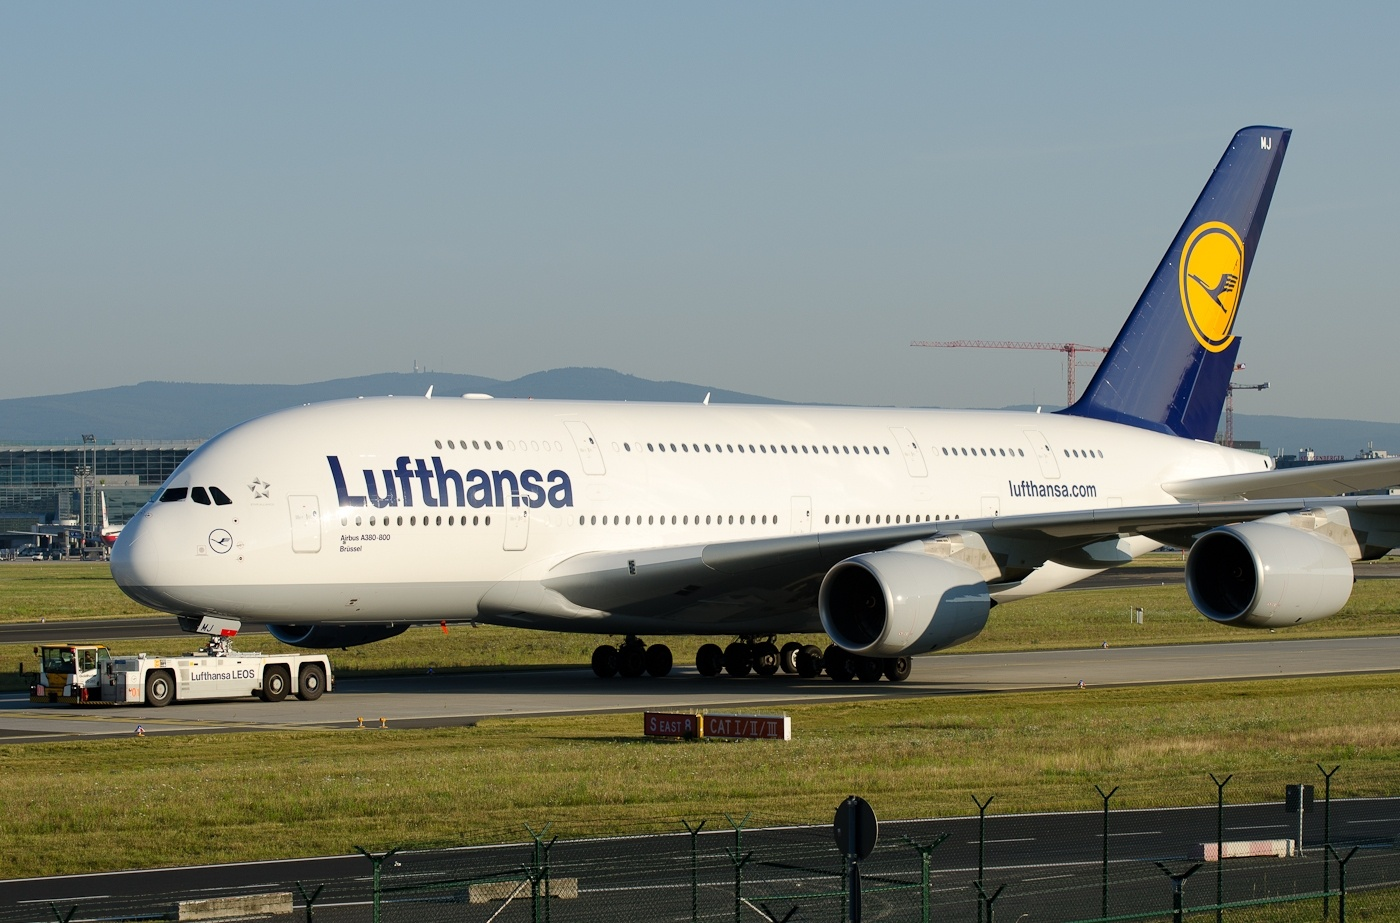 airbus a380 800 lufthansa towed by leos aircraft wallpaper galleries. Black Bedroom Furniture Sets. Home Design Ideas